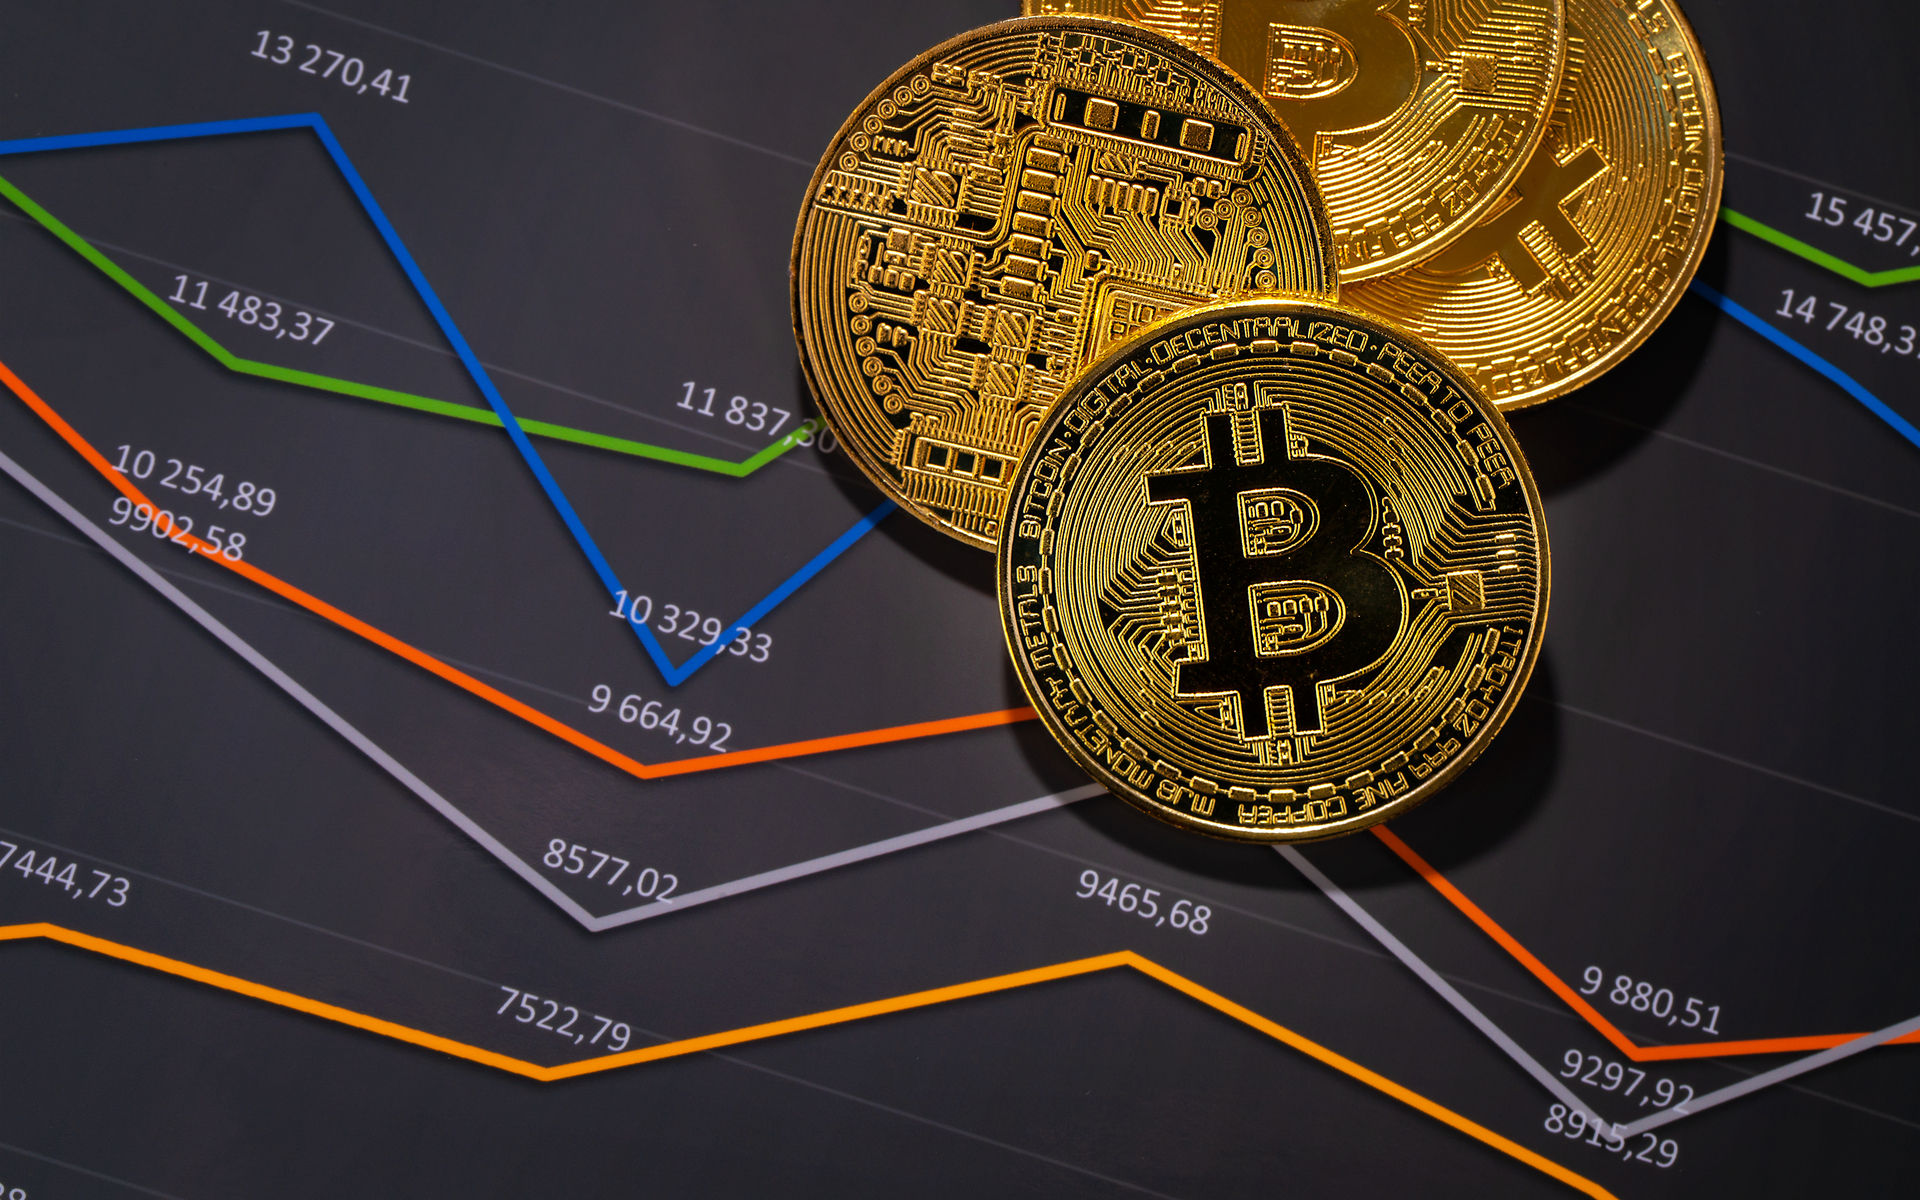 Bitcoin price shows correlation to global economic crisis